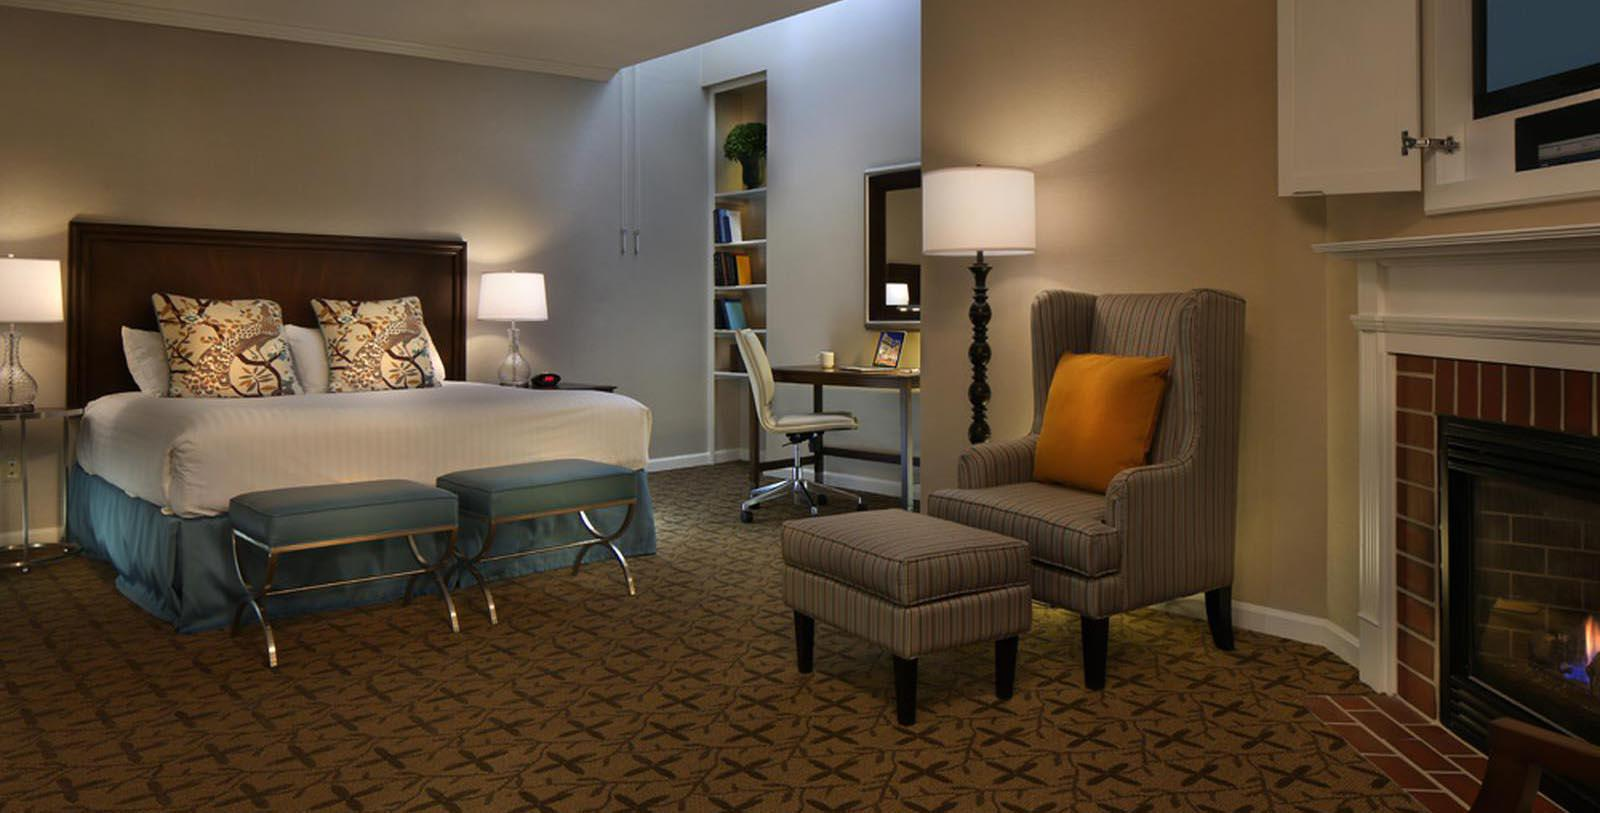 Image of guestroom suite at Gettysburg Hotel, Est.1797, Member of Historic Hotels of America, in Gettysburg, Pennsylvania, Location Map